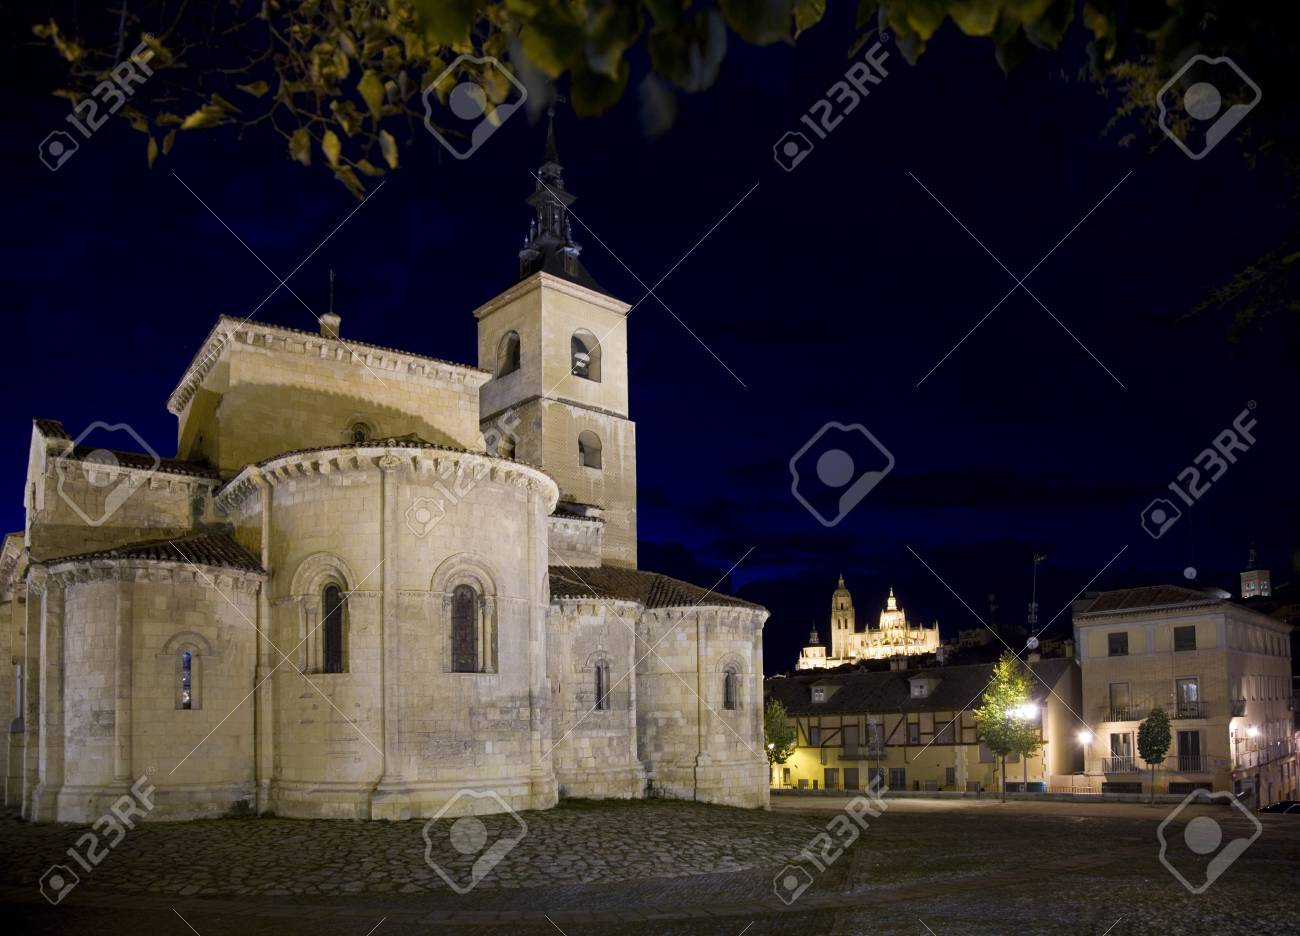 Segovia church with night illumination